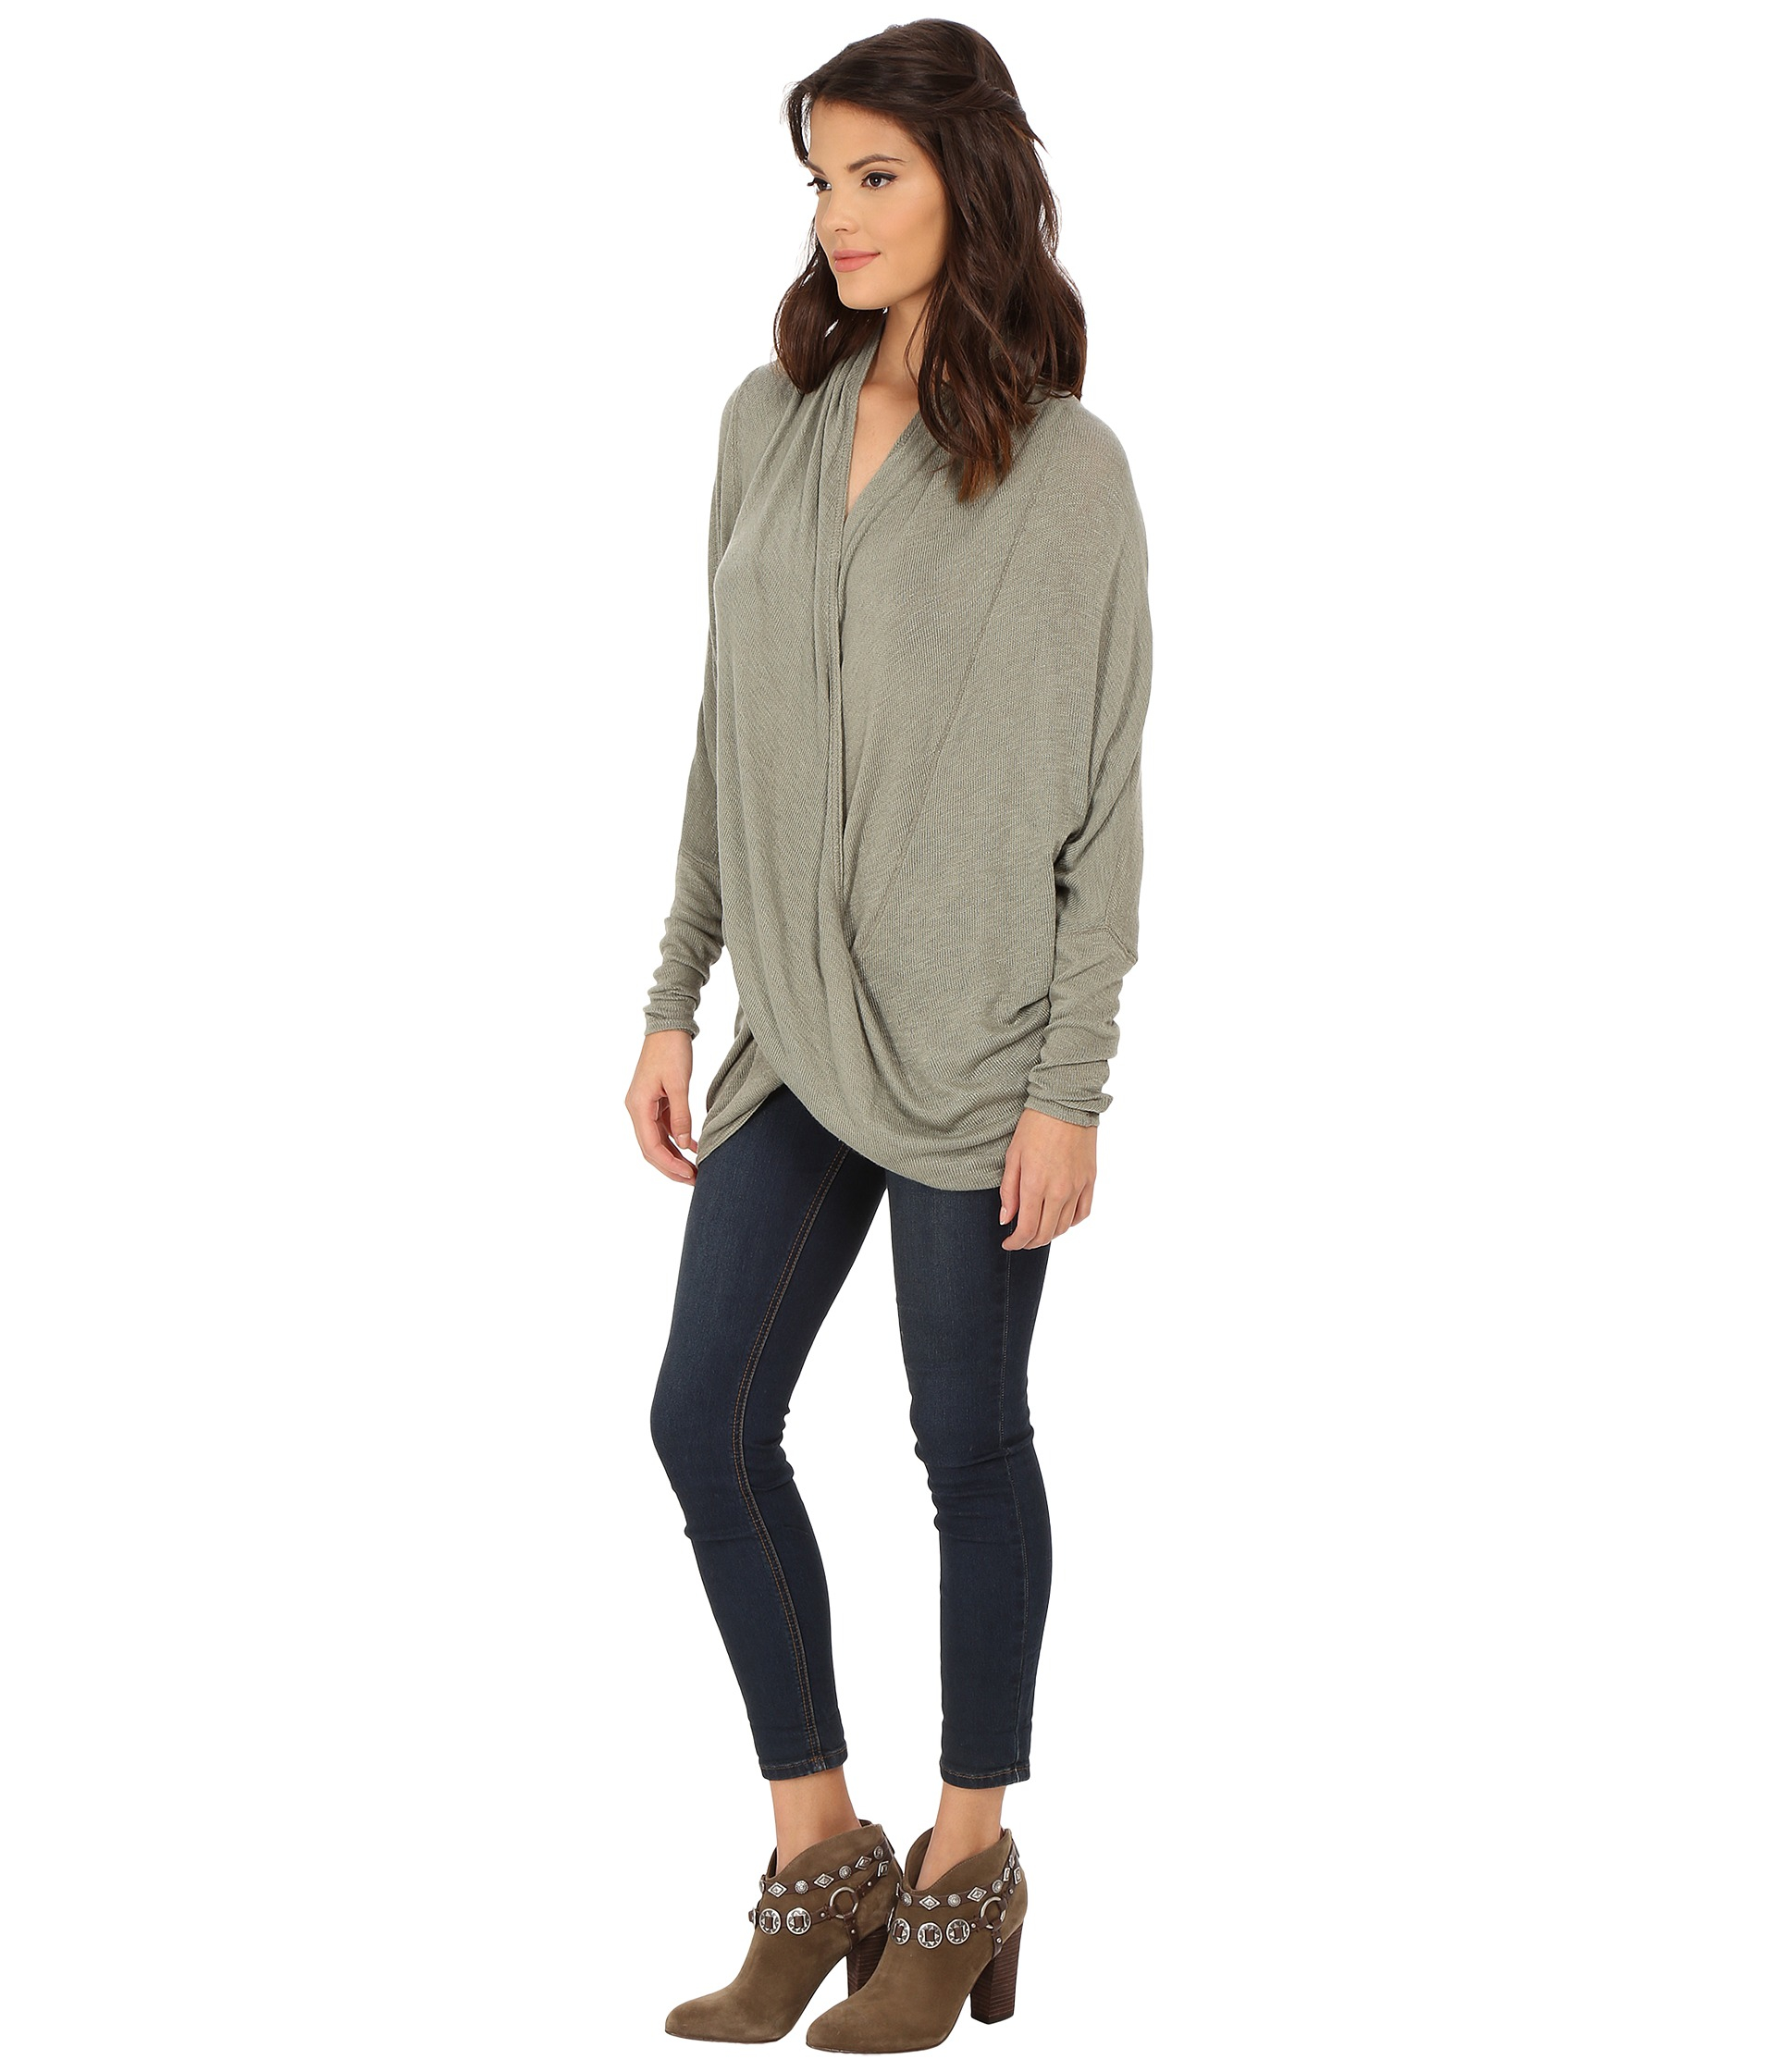 89a200f514f8 Lyst - Free People Sheila Hacci Top in Green